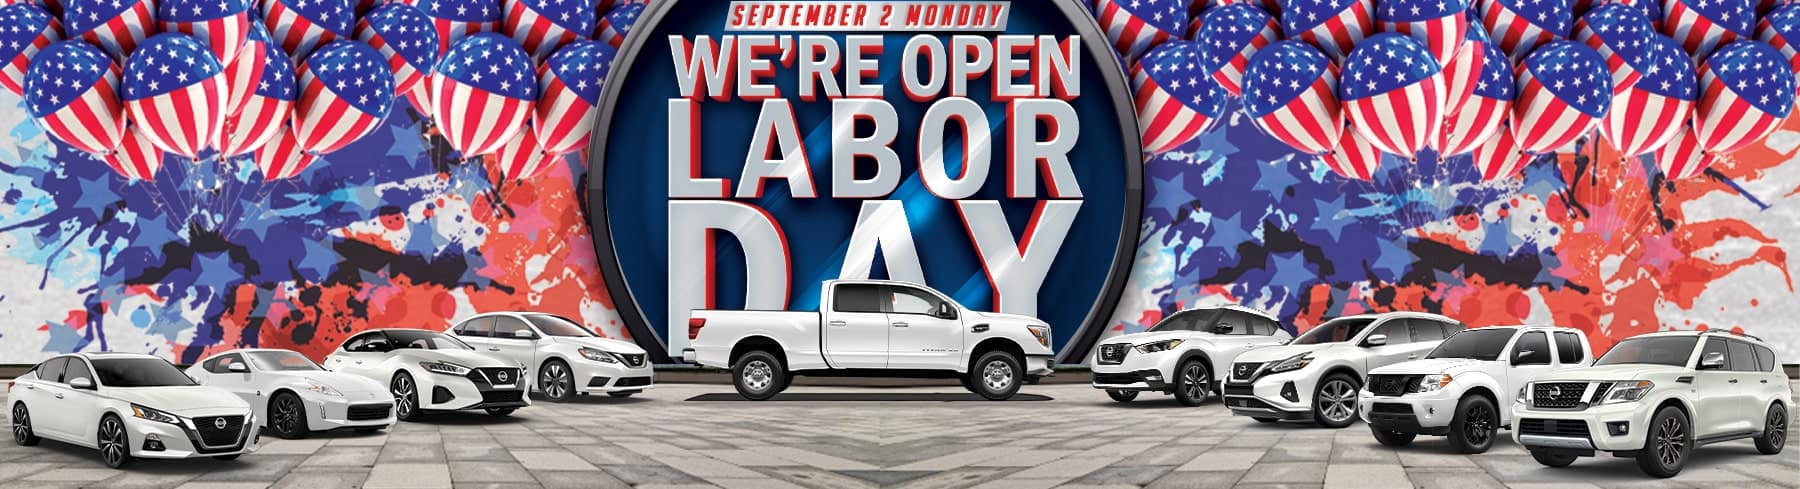 Nissan-Open-Labor-Day-min